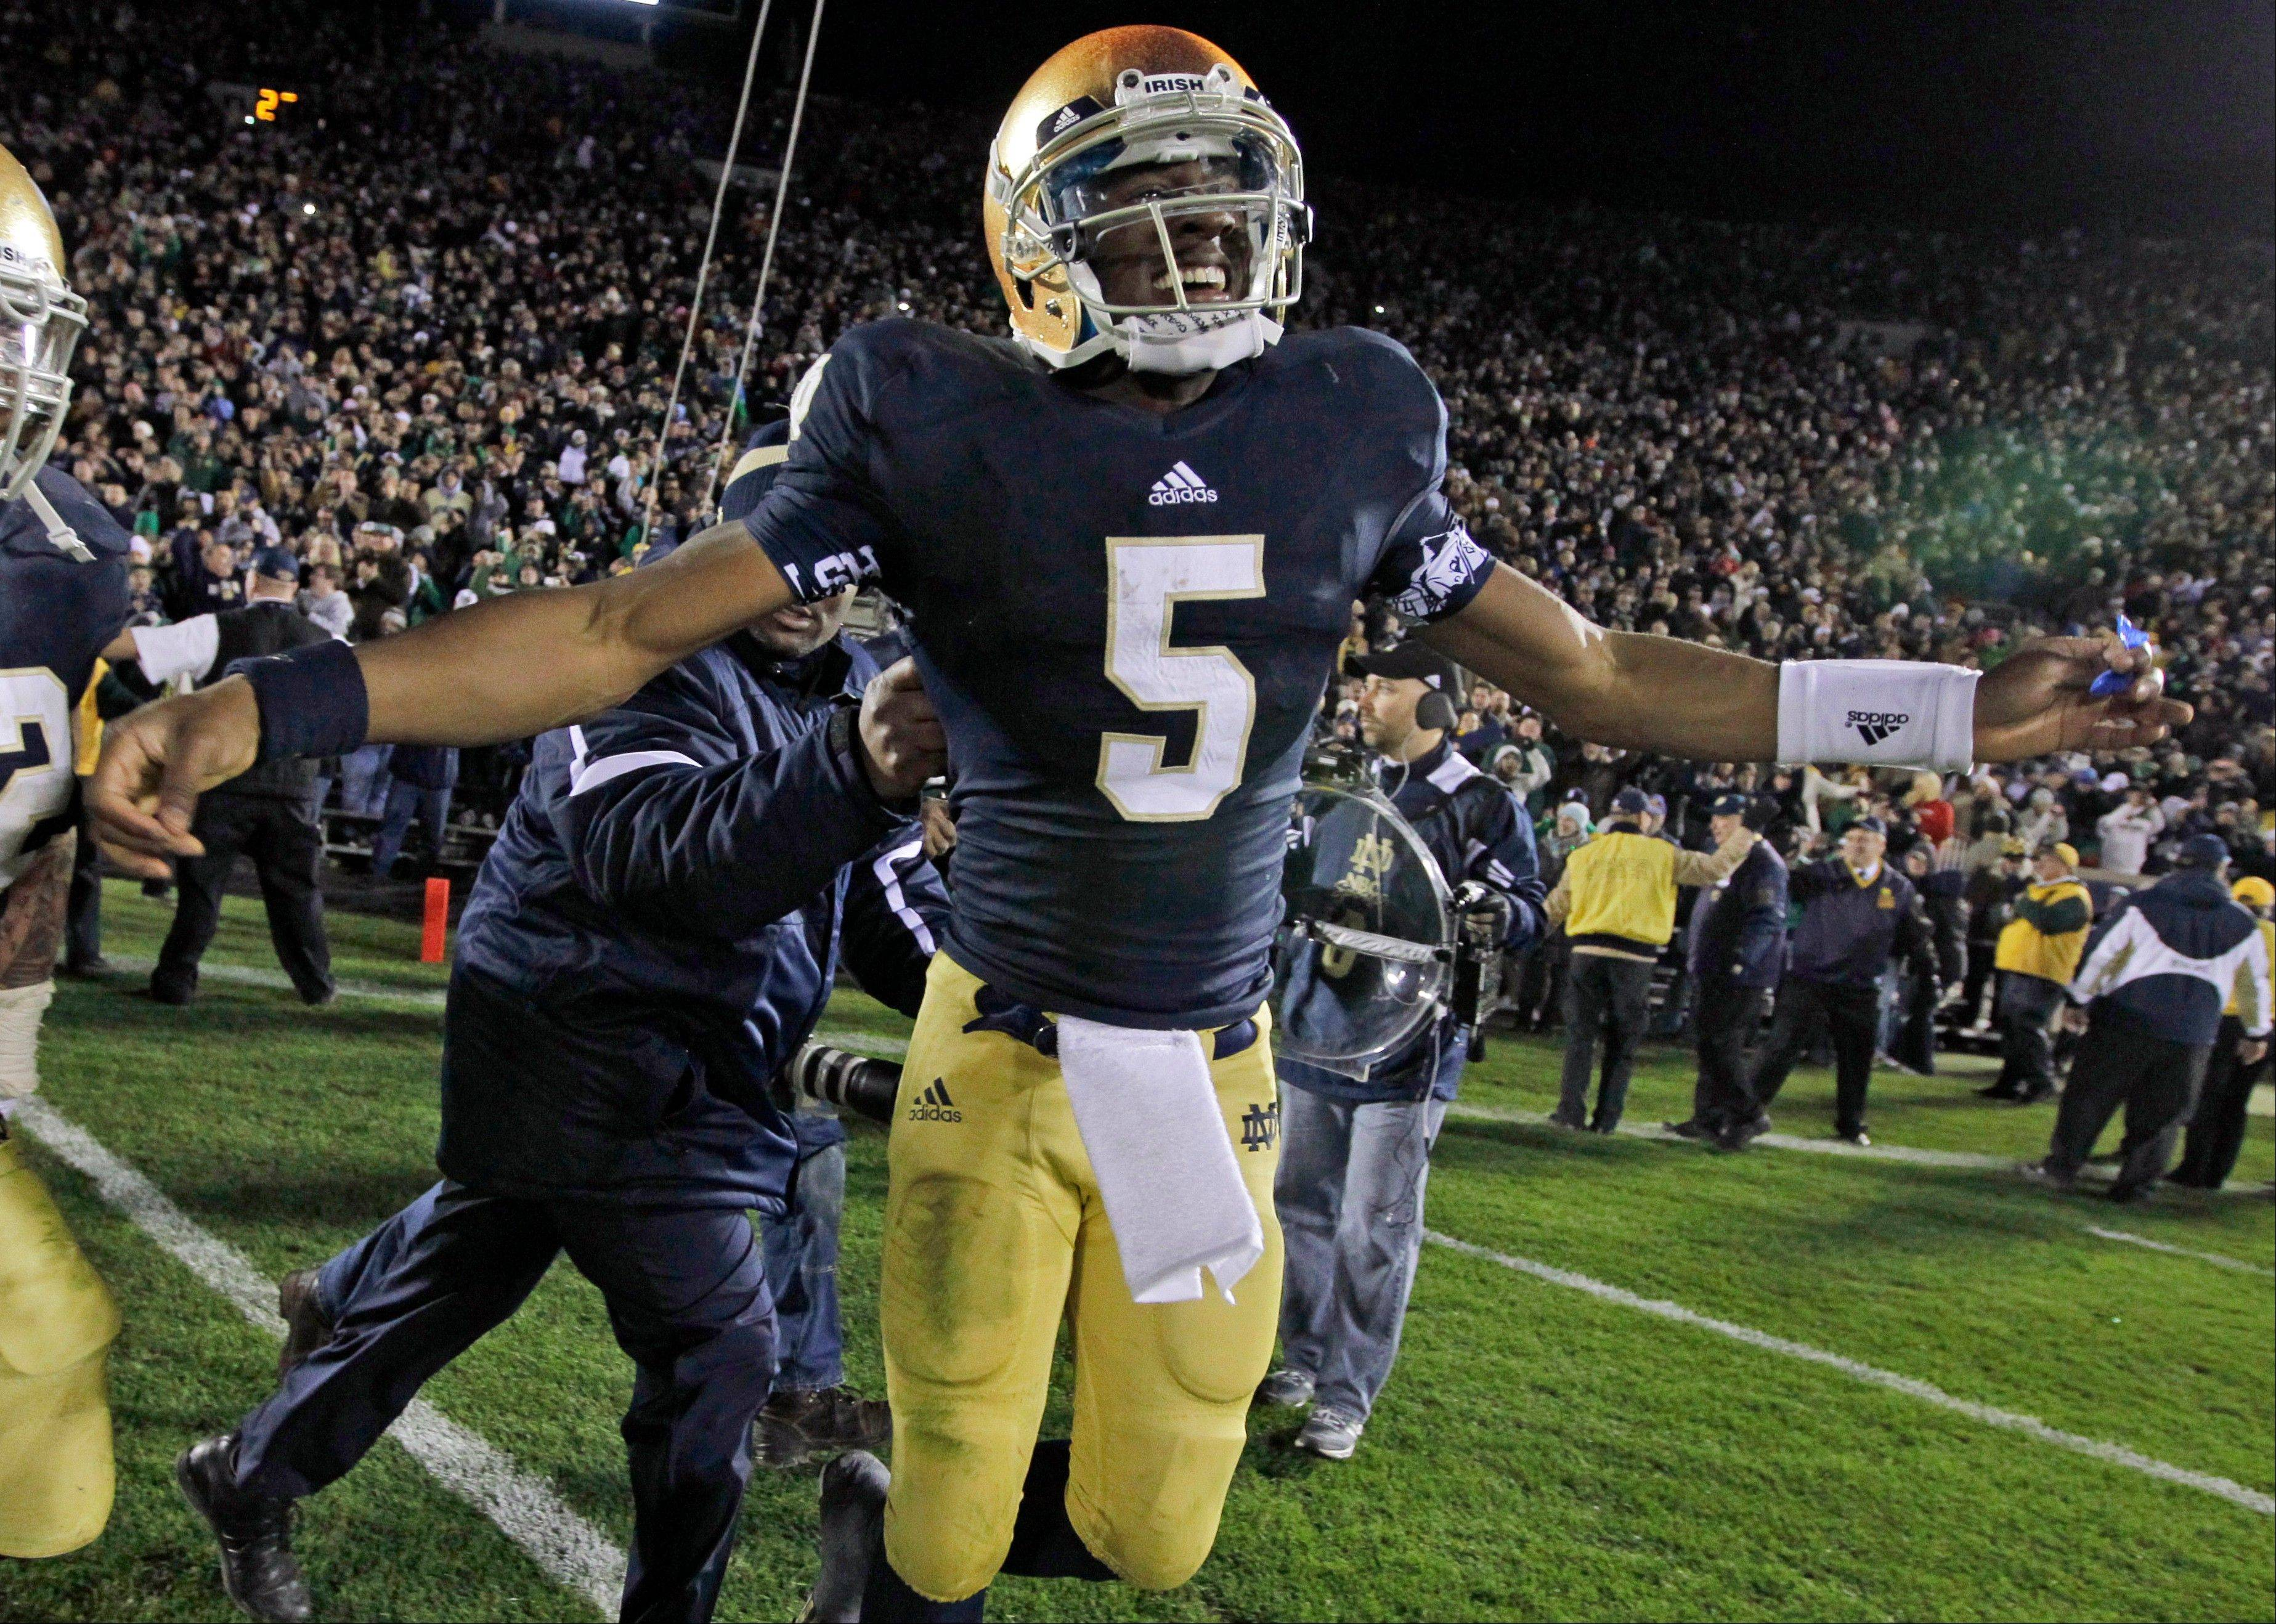 Irish eyes began smiling when Kelly anointed Golson his QB